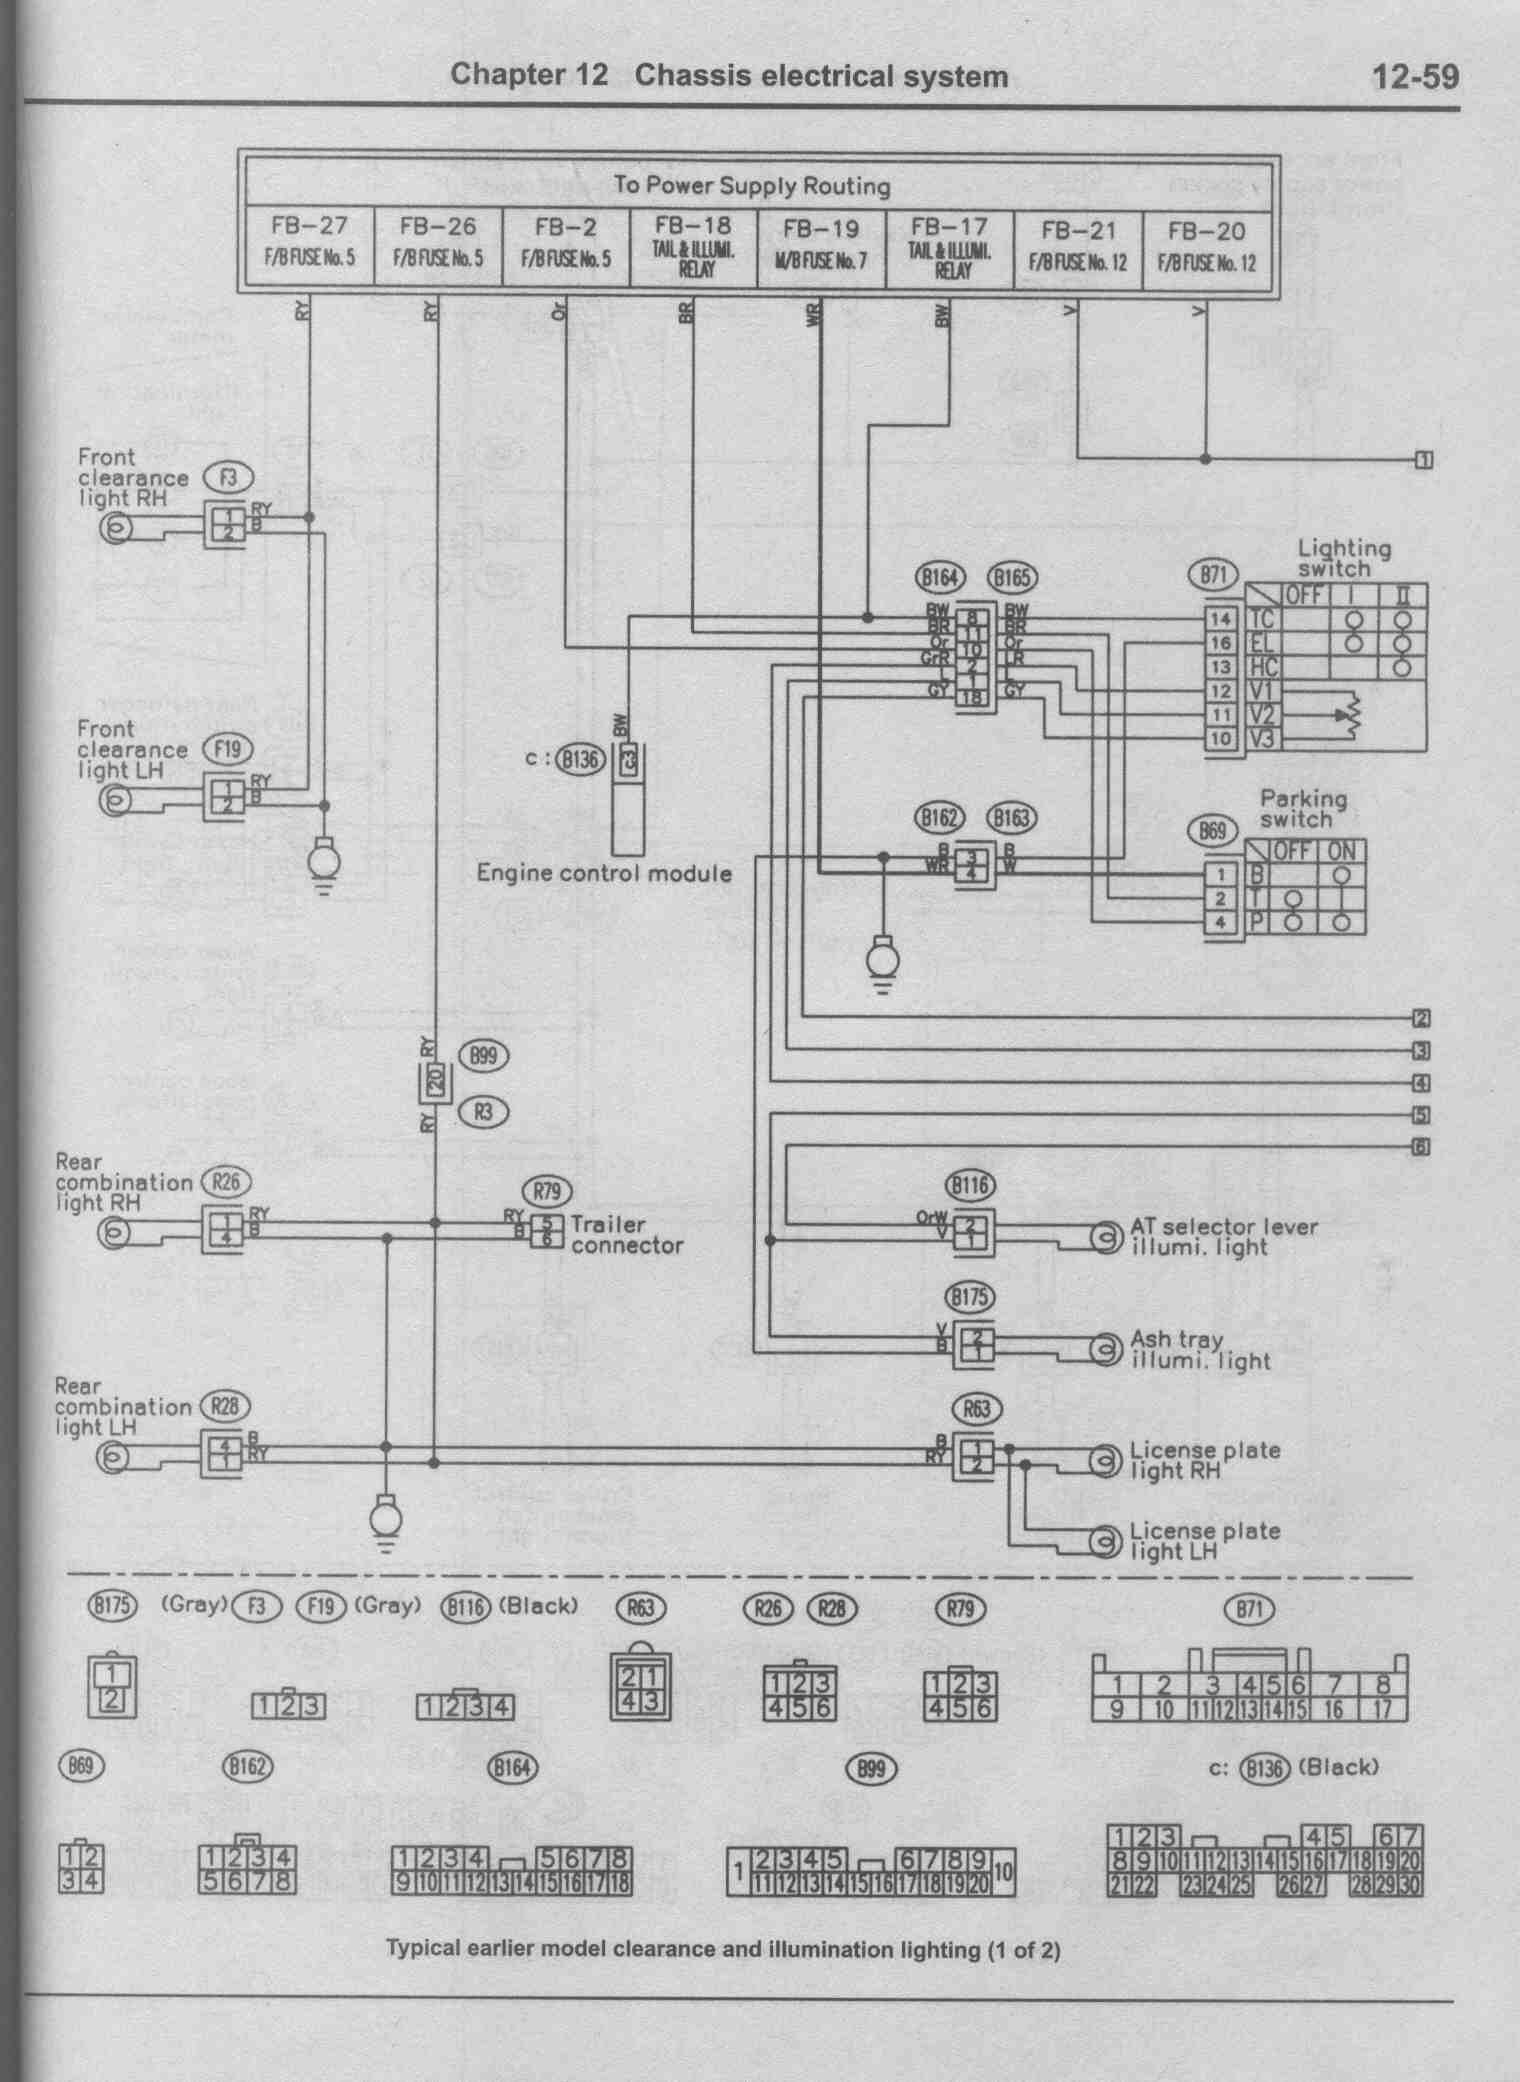 2005 wrx stereo wiring diagram of lytic and lysogenic cycle 2008 subaru impreza engine library